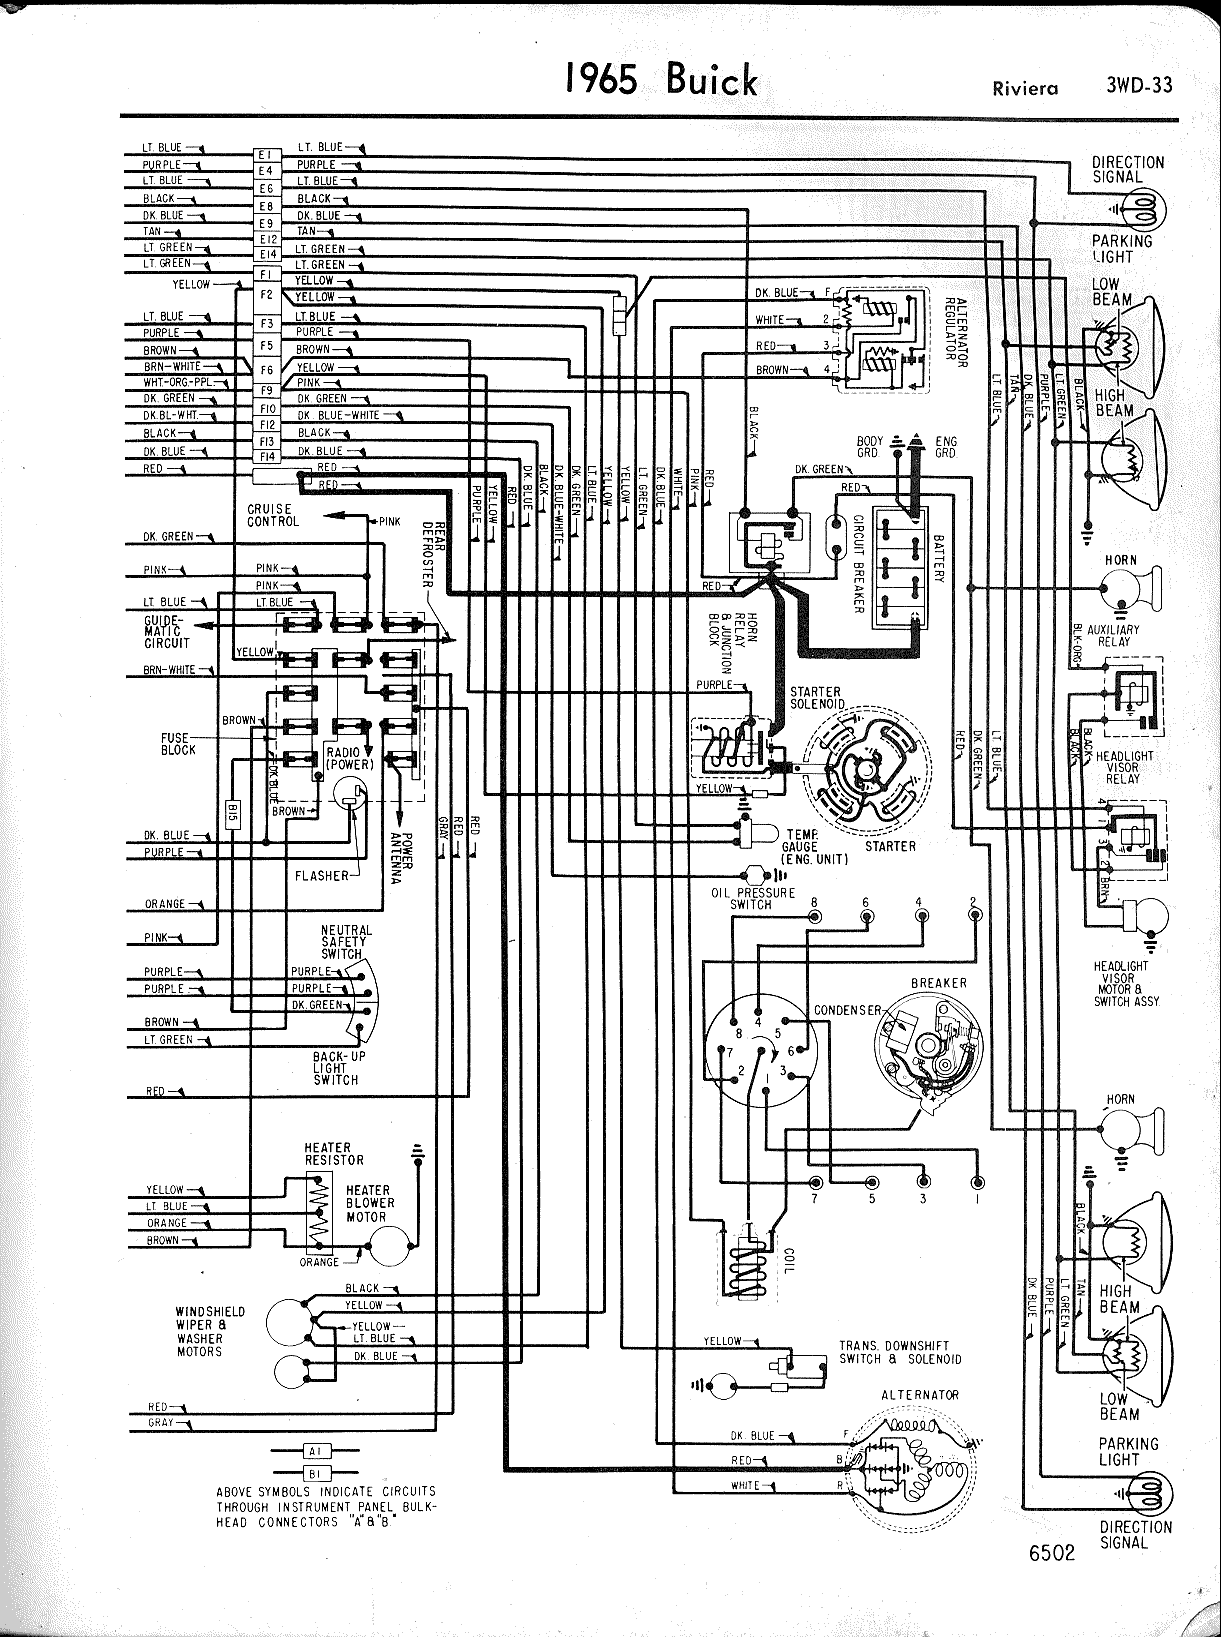 65 riviera wire diagram data wiring diagrambuick wiring diagrams 1957 1965 1963 riviera 1965 riviera right half